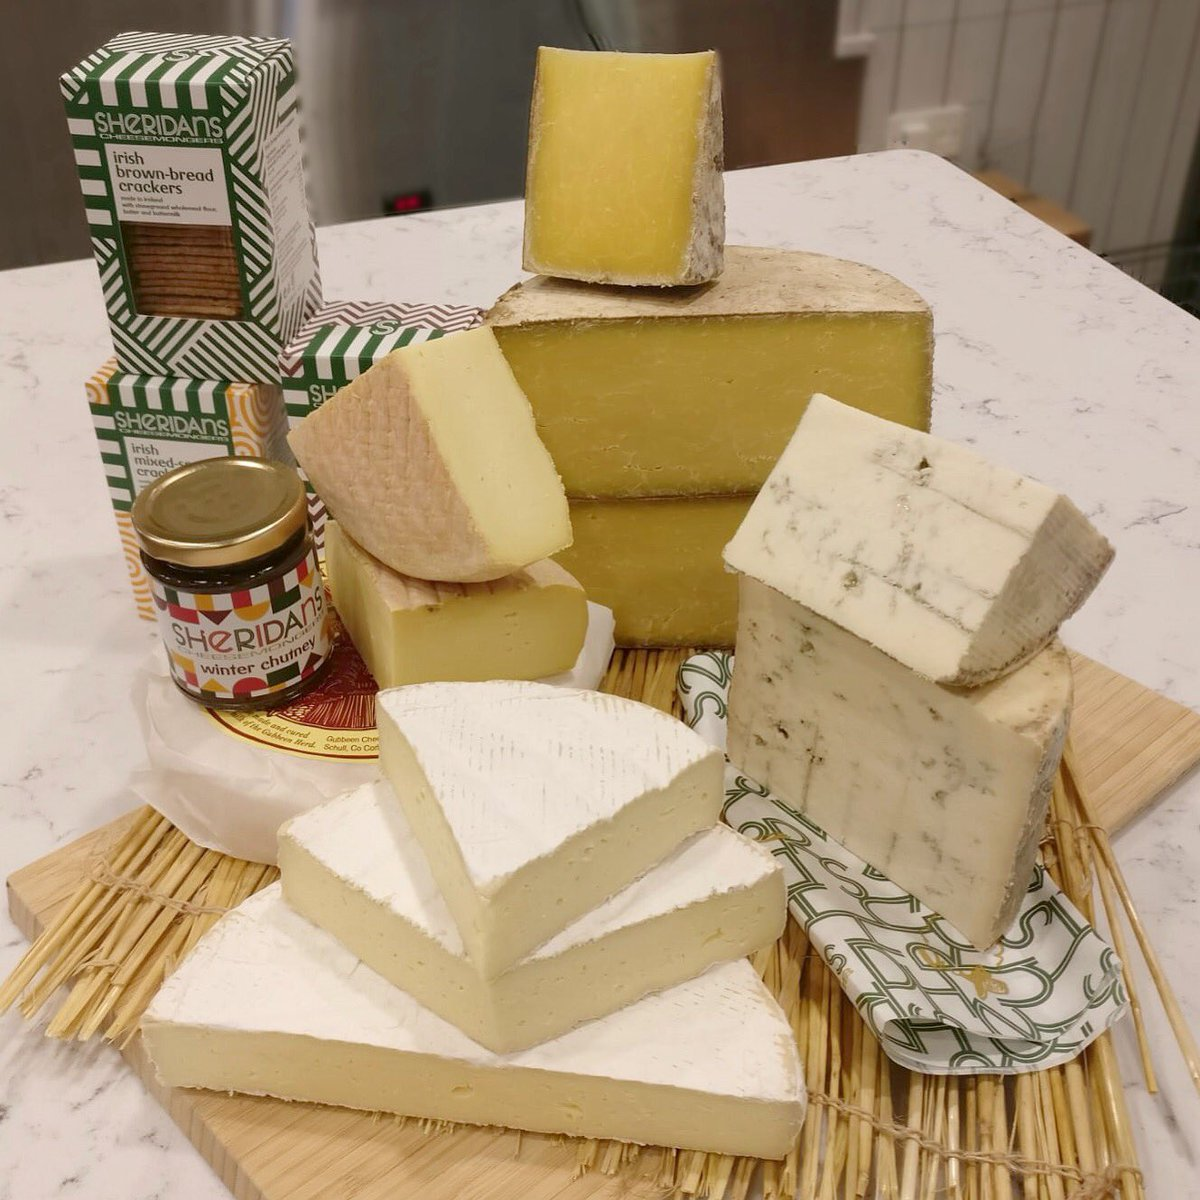 Today is Swords Pavilions Day & we'll be doing cheese tastings of 15 fields, Crozier Blue, Gubbeen and Wicklow bán along with our winter chutney! Boxes of the Swords Pavilions cheese selections will be available in  Swo@dunnesstoresrds - perfect for an easy Thursday dinner.